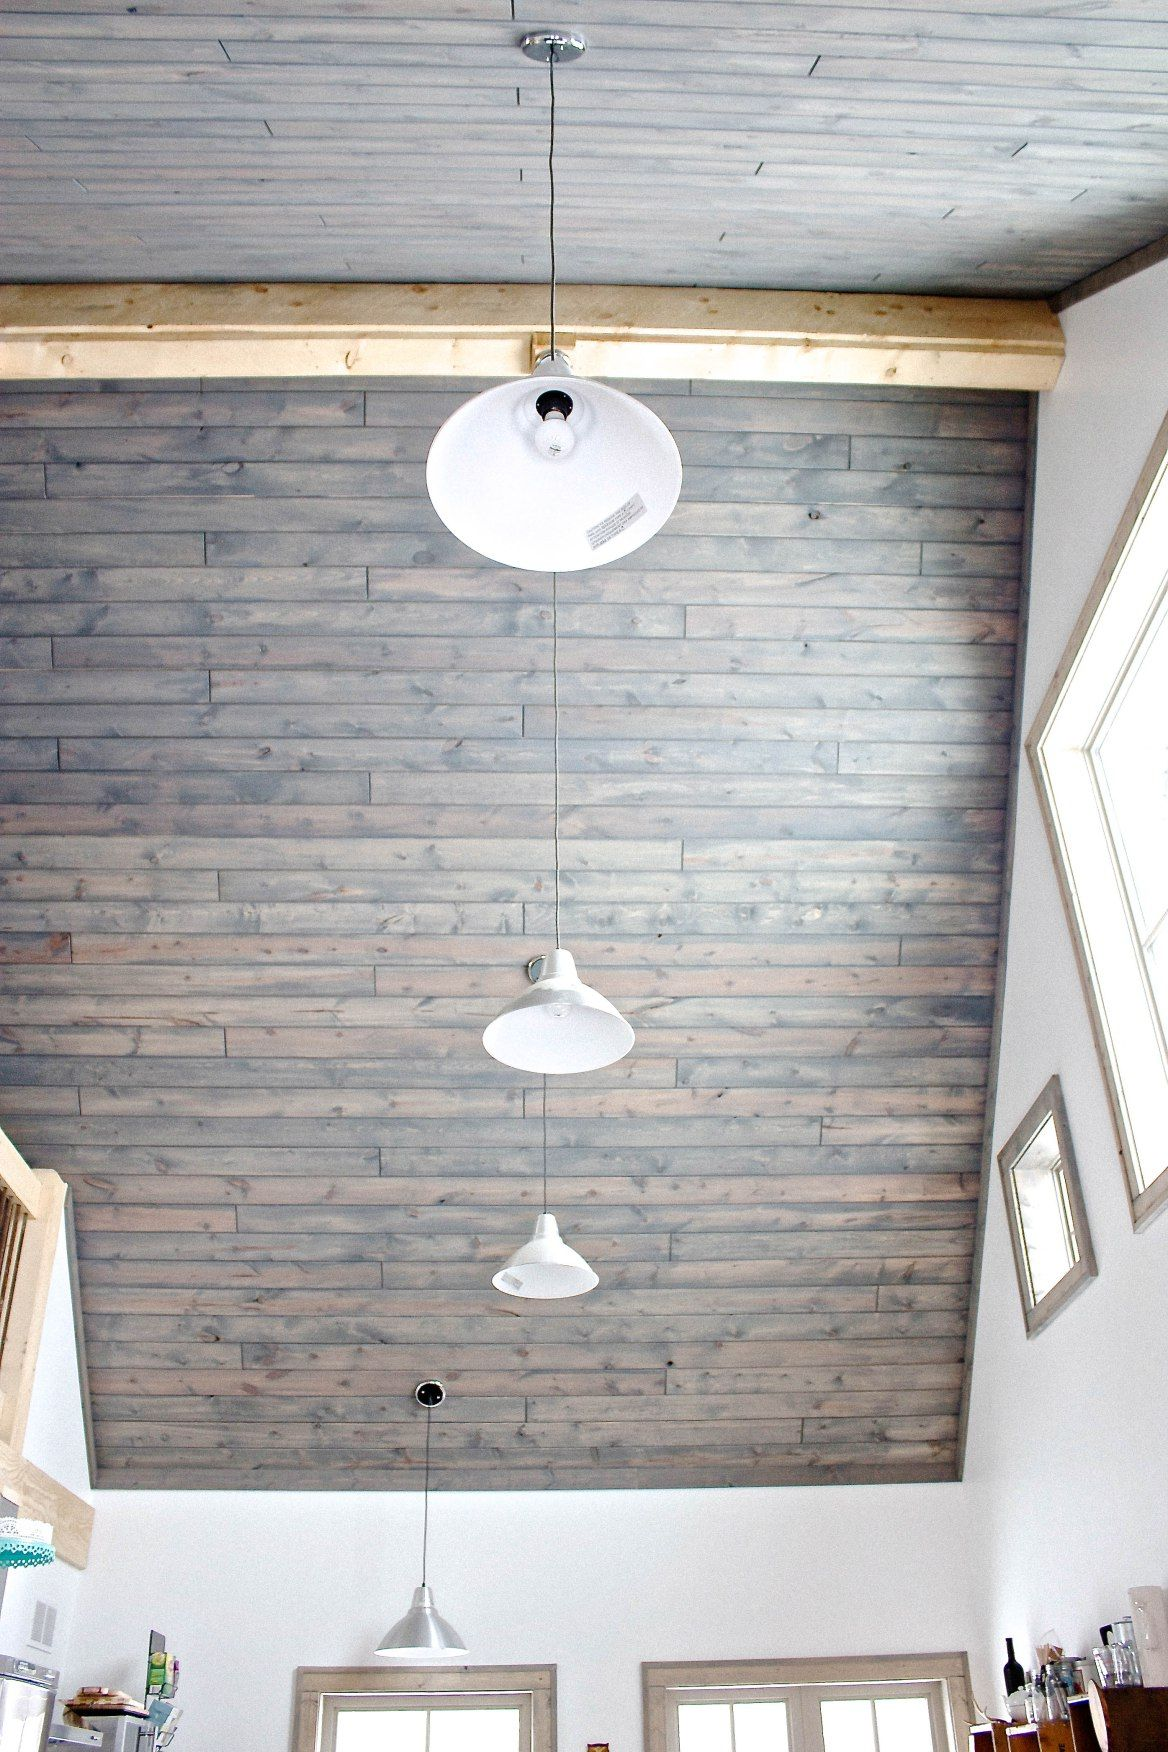 Tongue And Groove Ceiling 5 Tongue And Groove Ceiling Tongue And Groove Walls Tongue And Groove